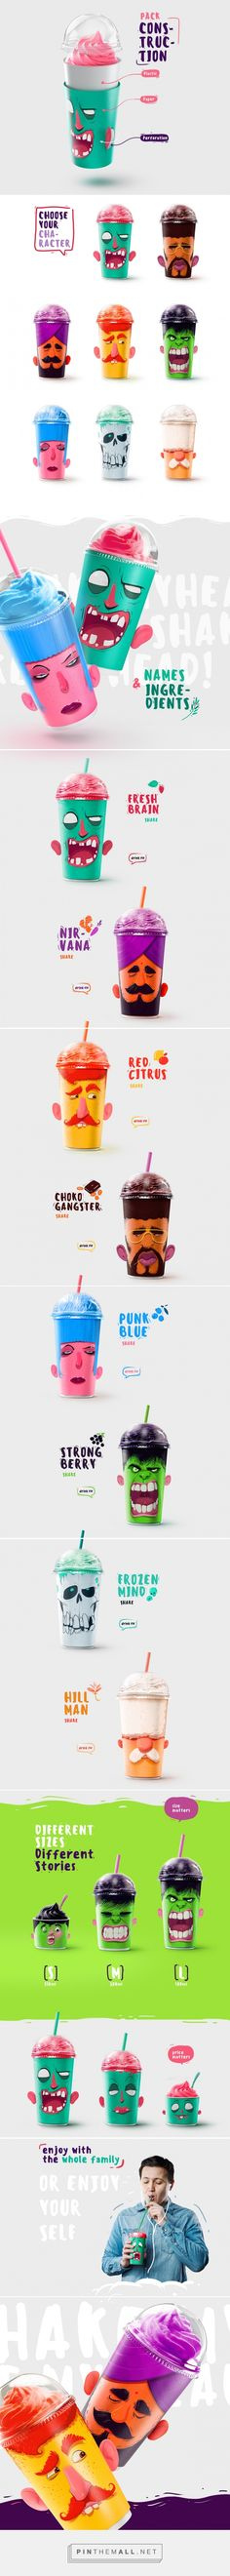 Fun! Shake My Head Milkshakes packaging design by Rustam Usmanov (Russia)…